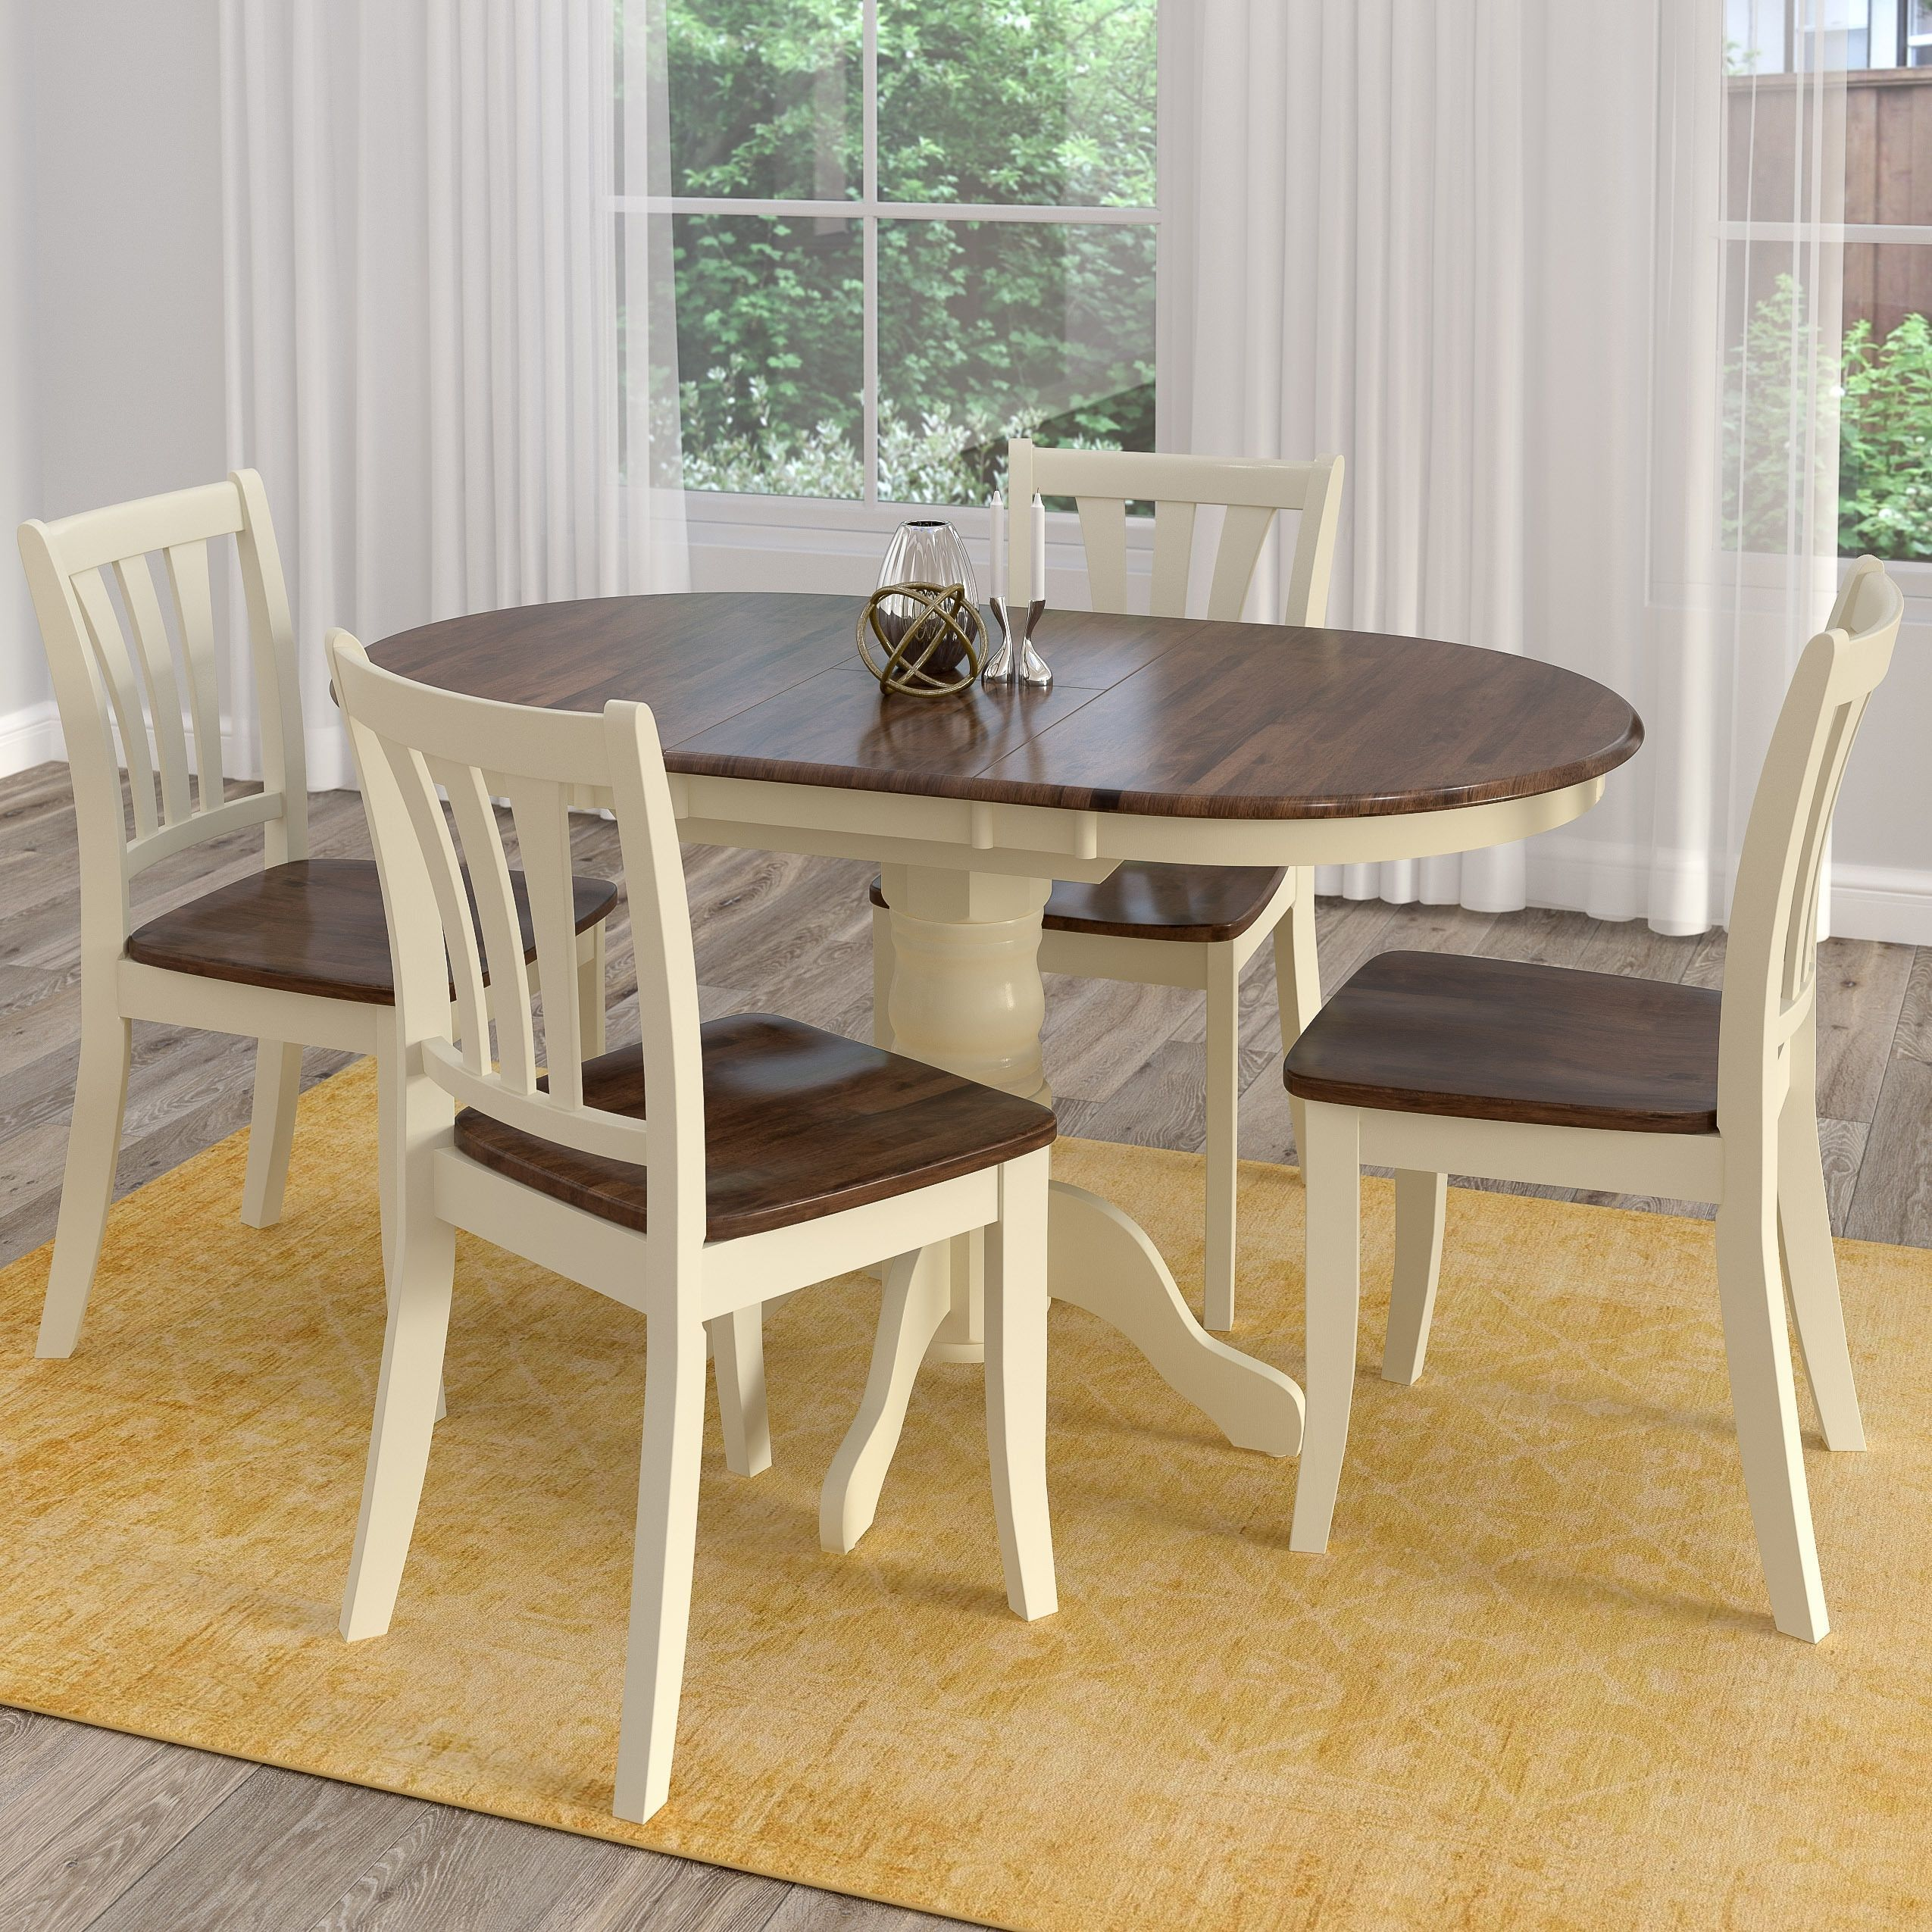 Overstock Com Online Shopping Bedding Furniture Electronics Jewelry Clothing More Solid Wood Dining Set Wood Dining Room White Dining Table